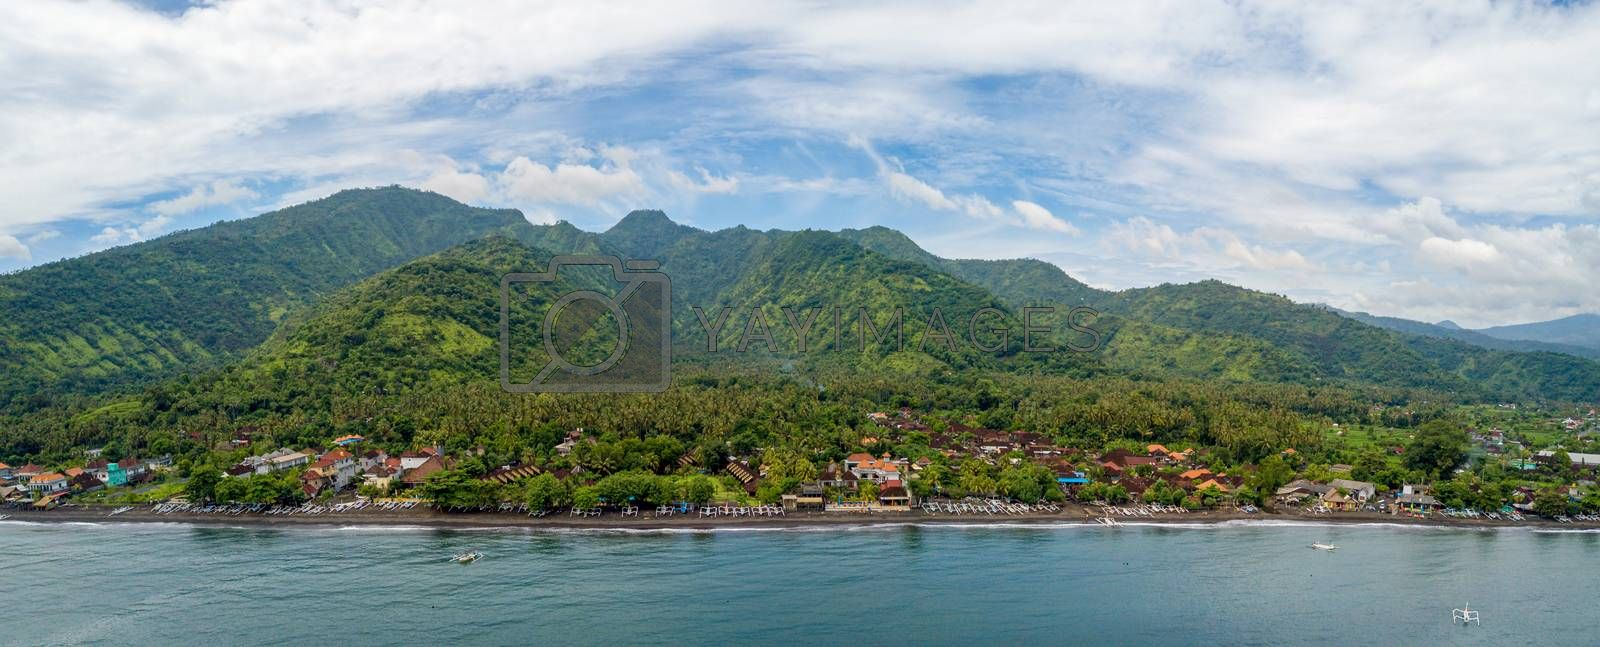 Panoramic aerial view of Amed beach in Bali, Indonesia. Traditional fishing boats called jukung on the black sand beach.